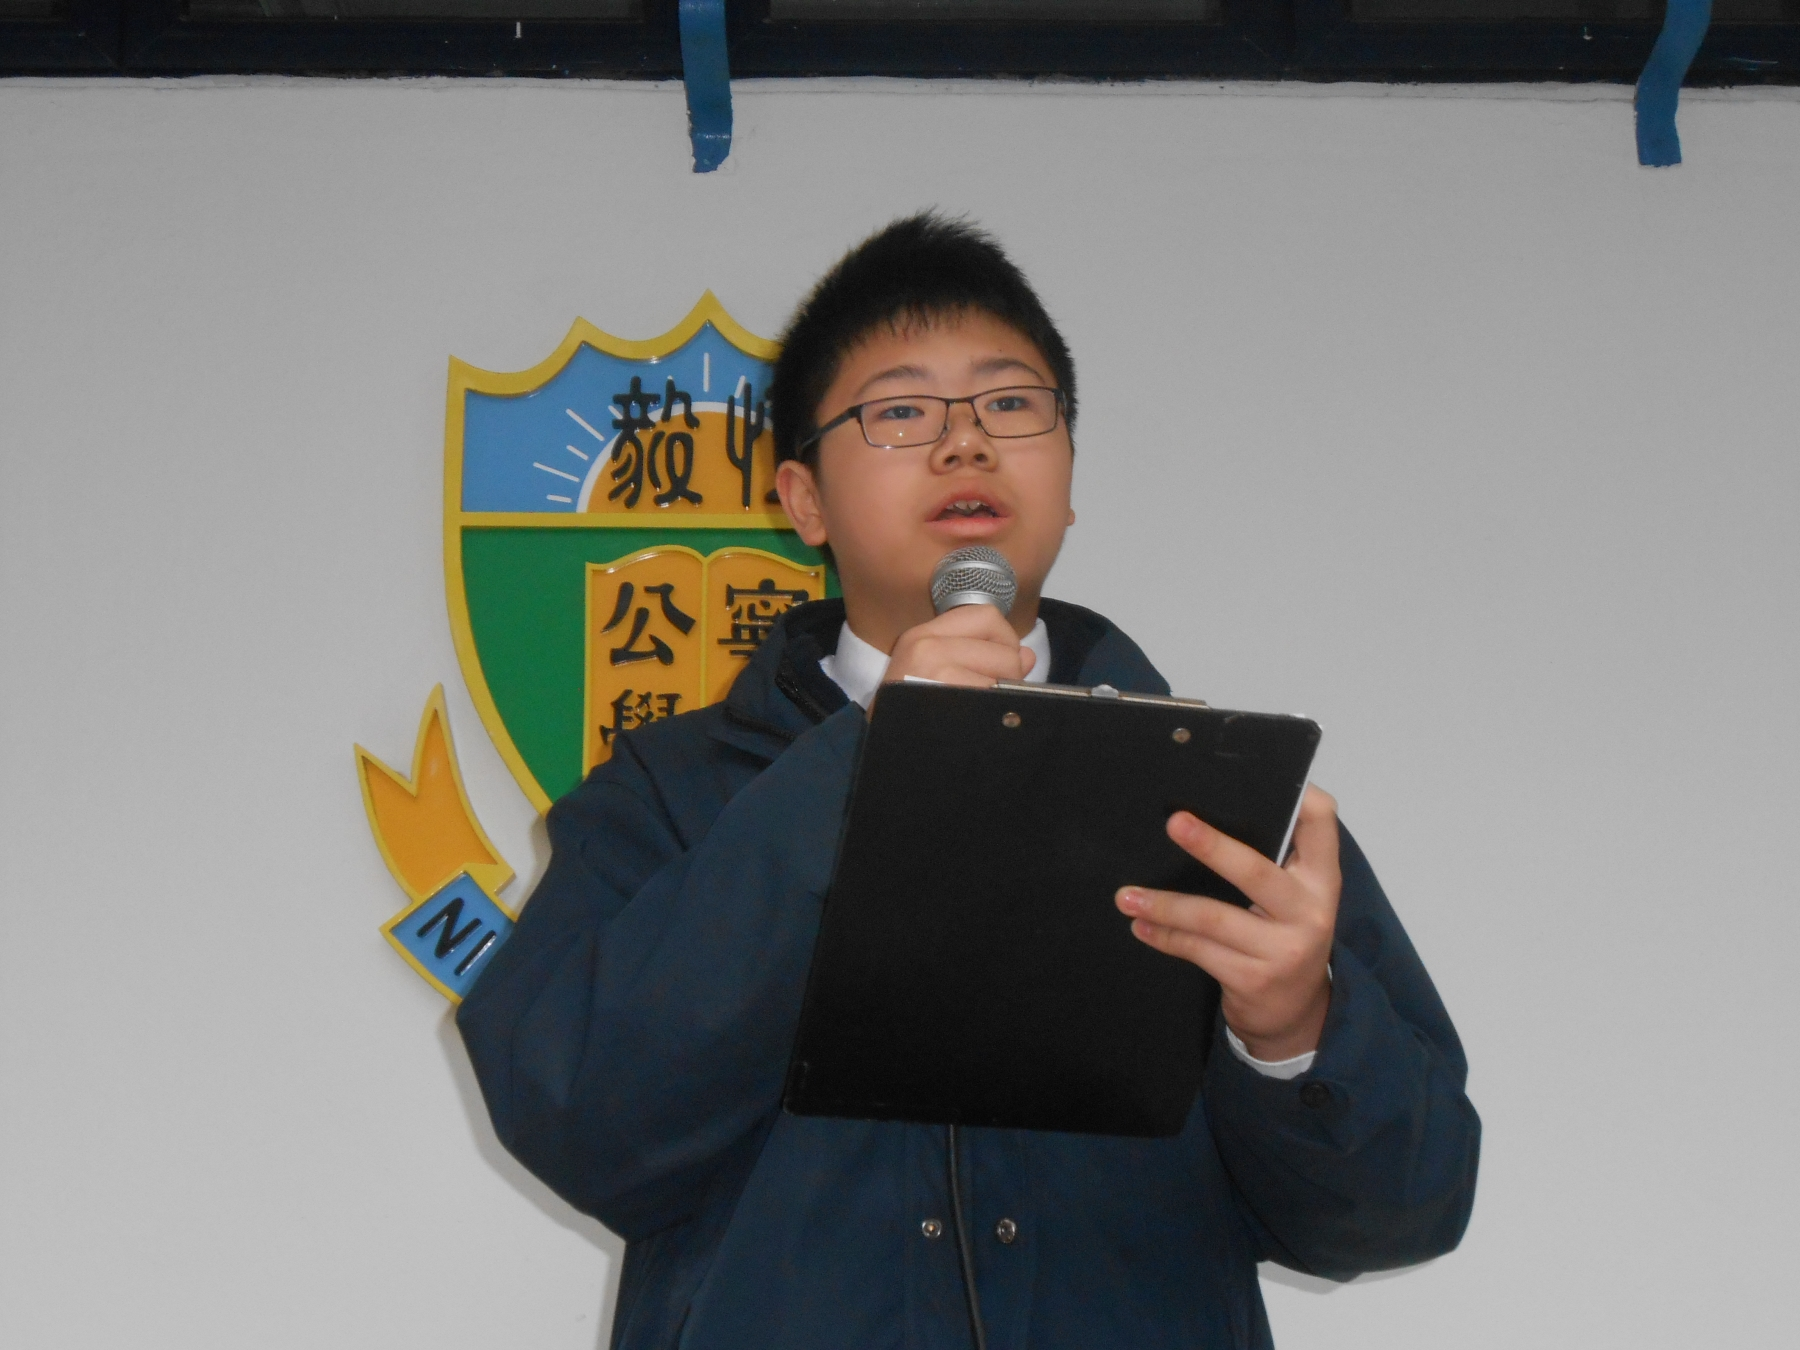 http://npc.edu.hk/sites/default/files/dscn8934.jpg